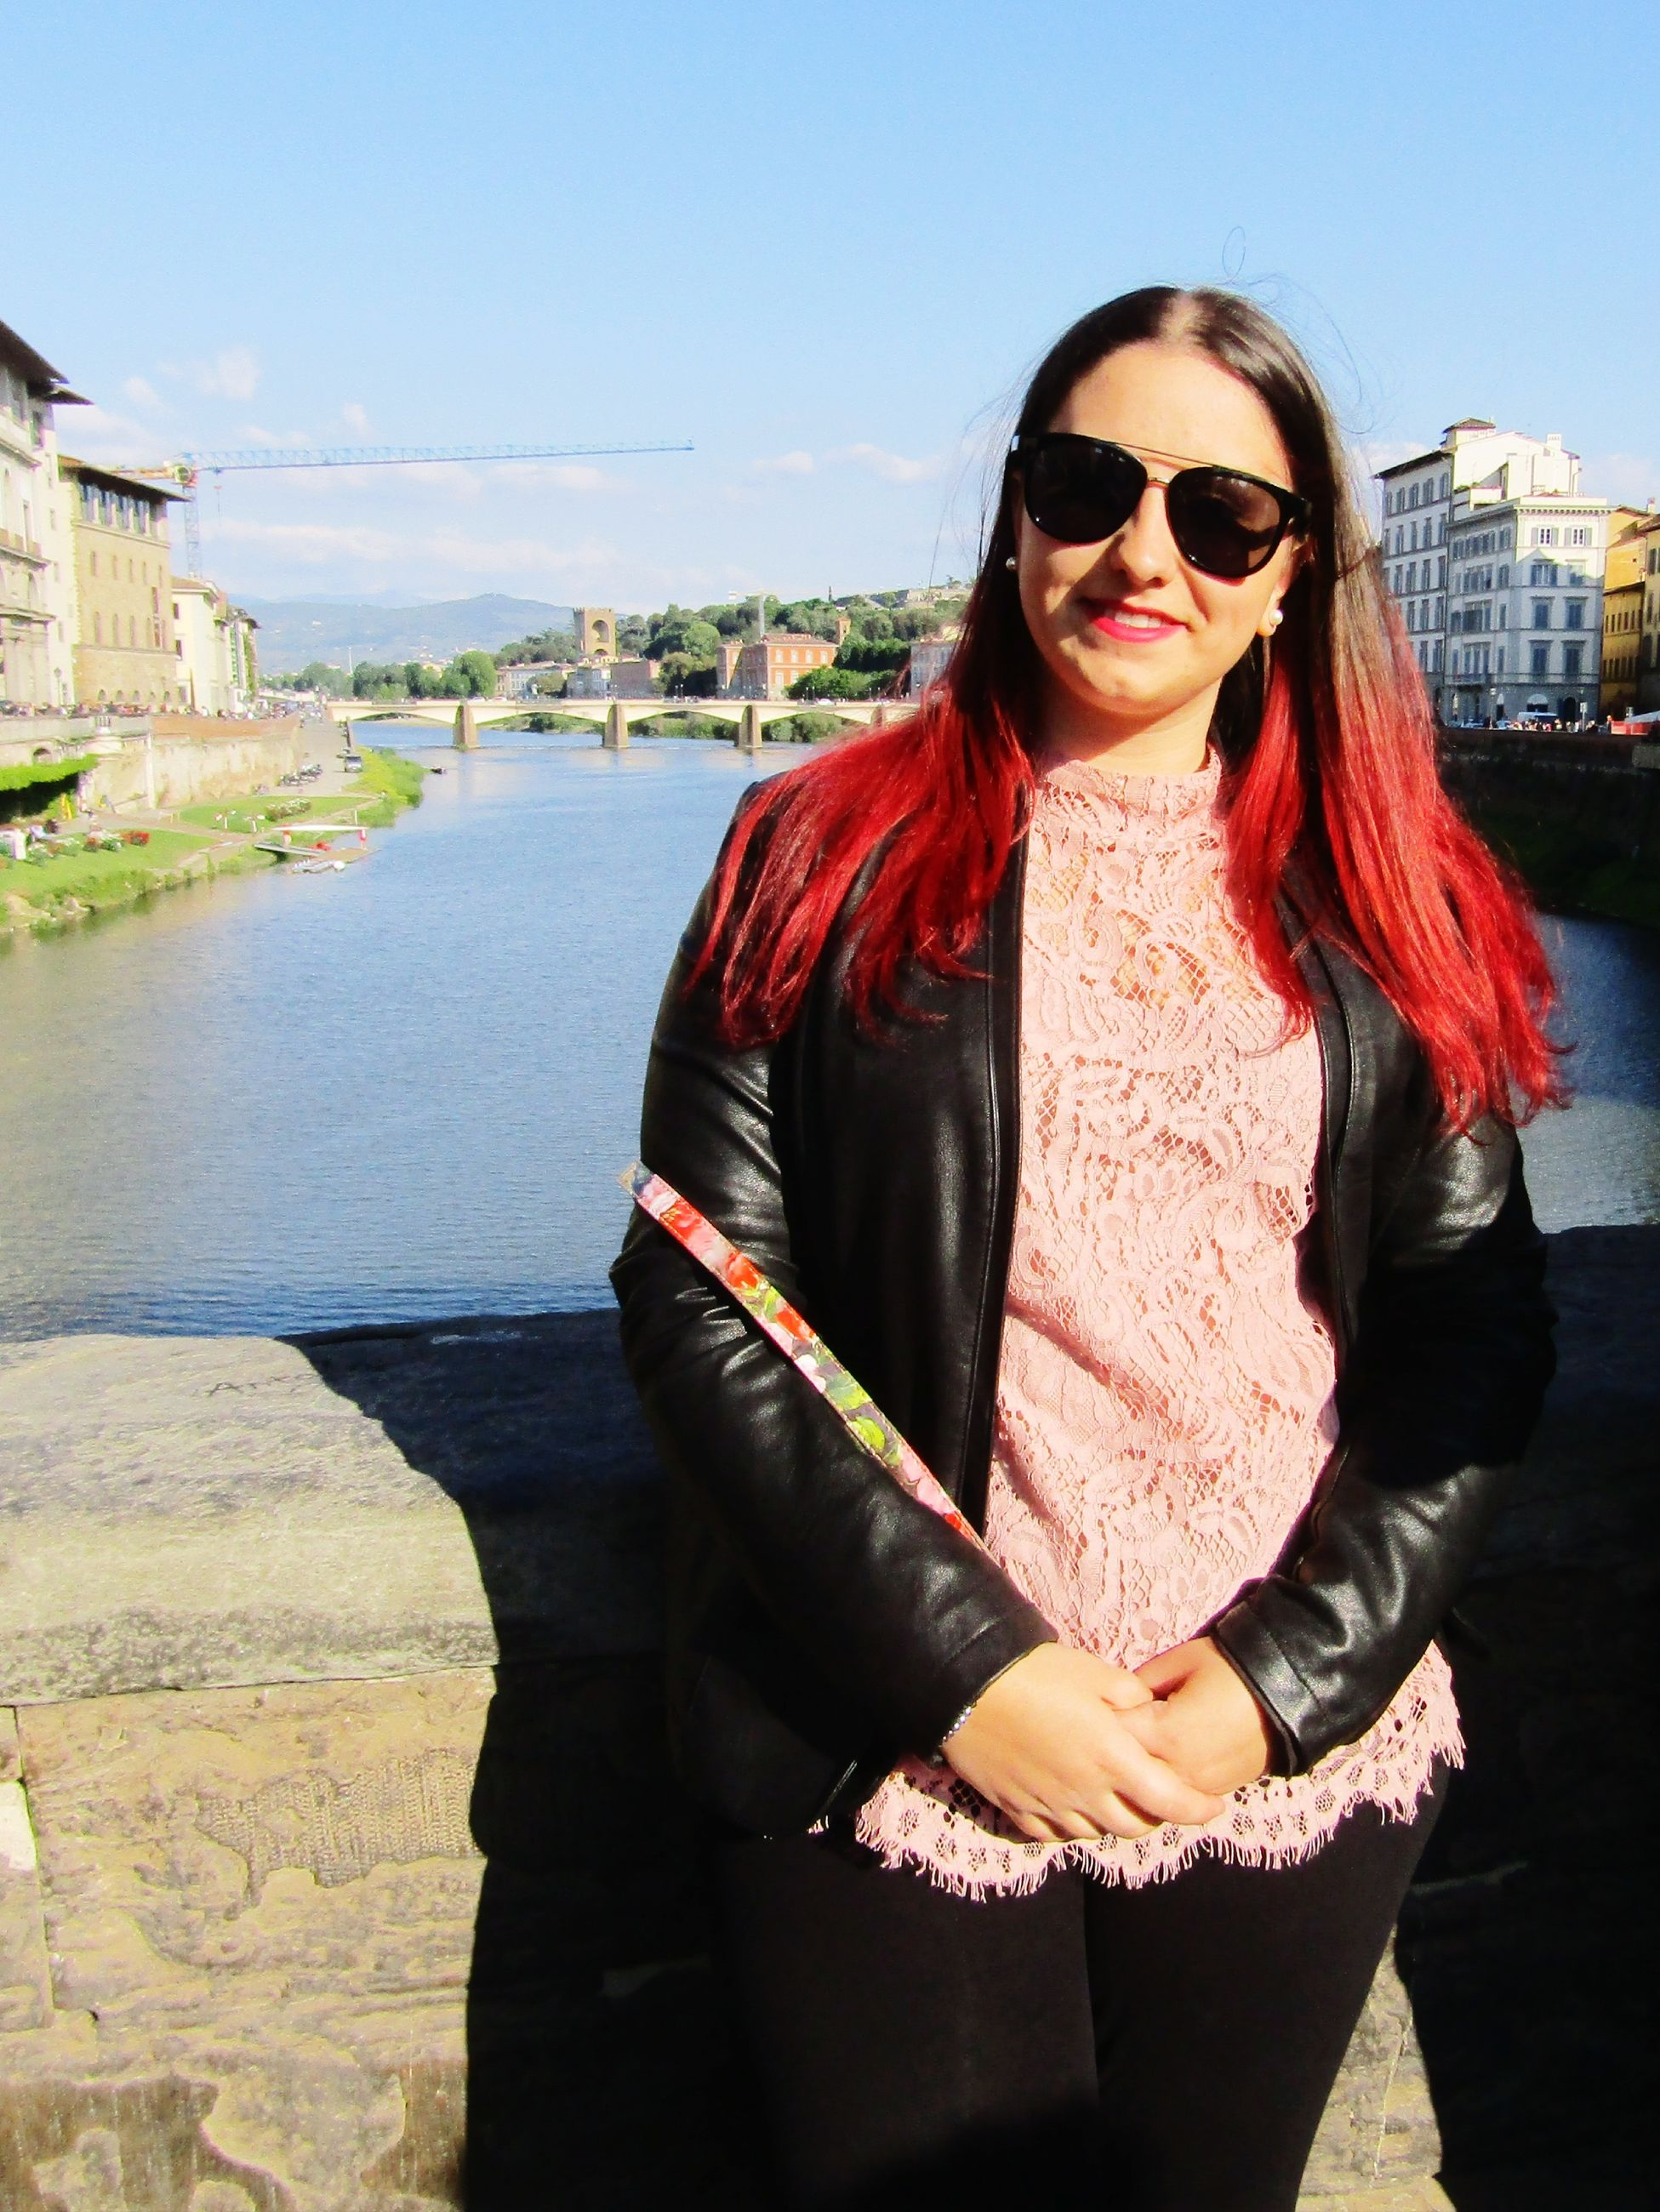 sunglasses, real people, one person, front view, outdoors, young adult, young women, lifestyles, smiling, looking at camera, sunlight, day, portrait, standing, leisure activity, architecture, building exterior, built structure, happiness, sky, retaining wall, water, nature